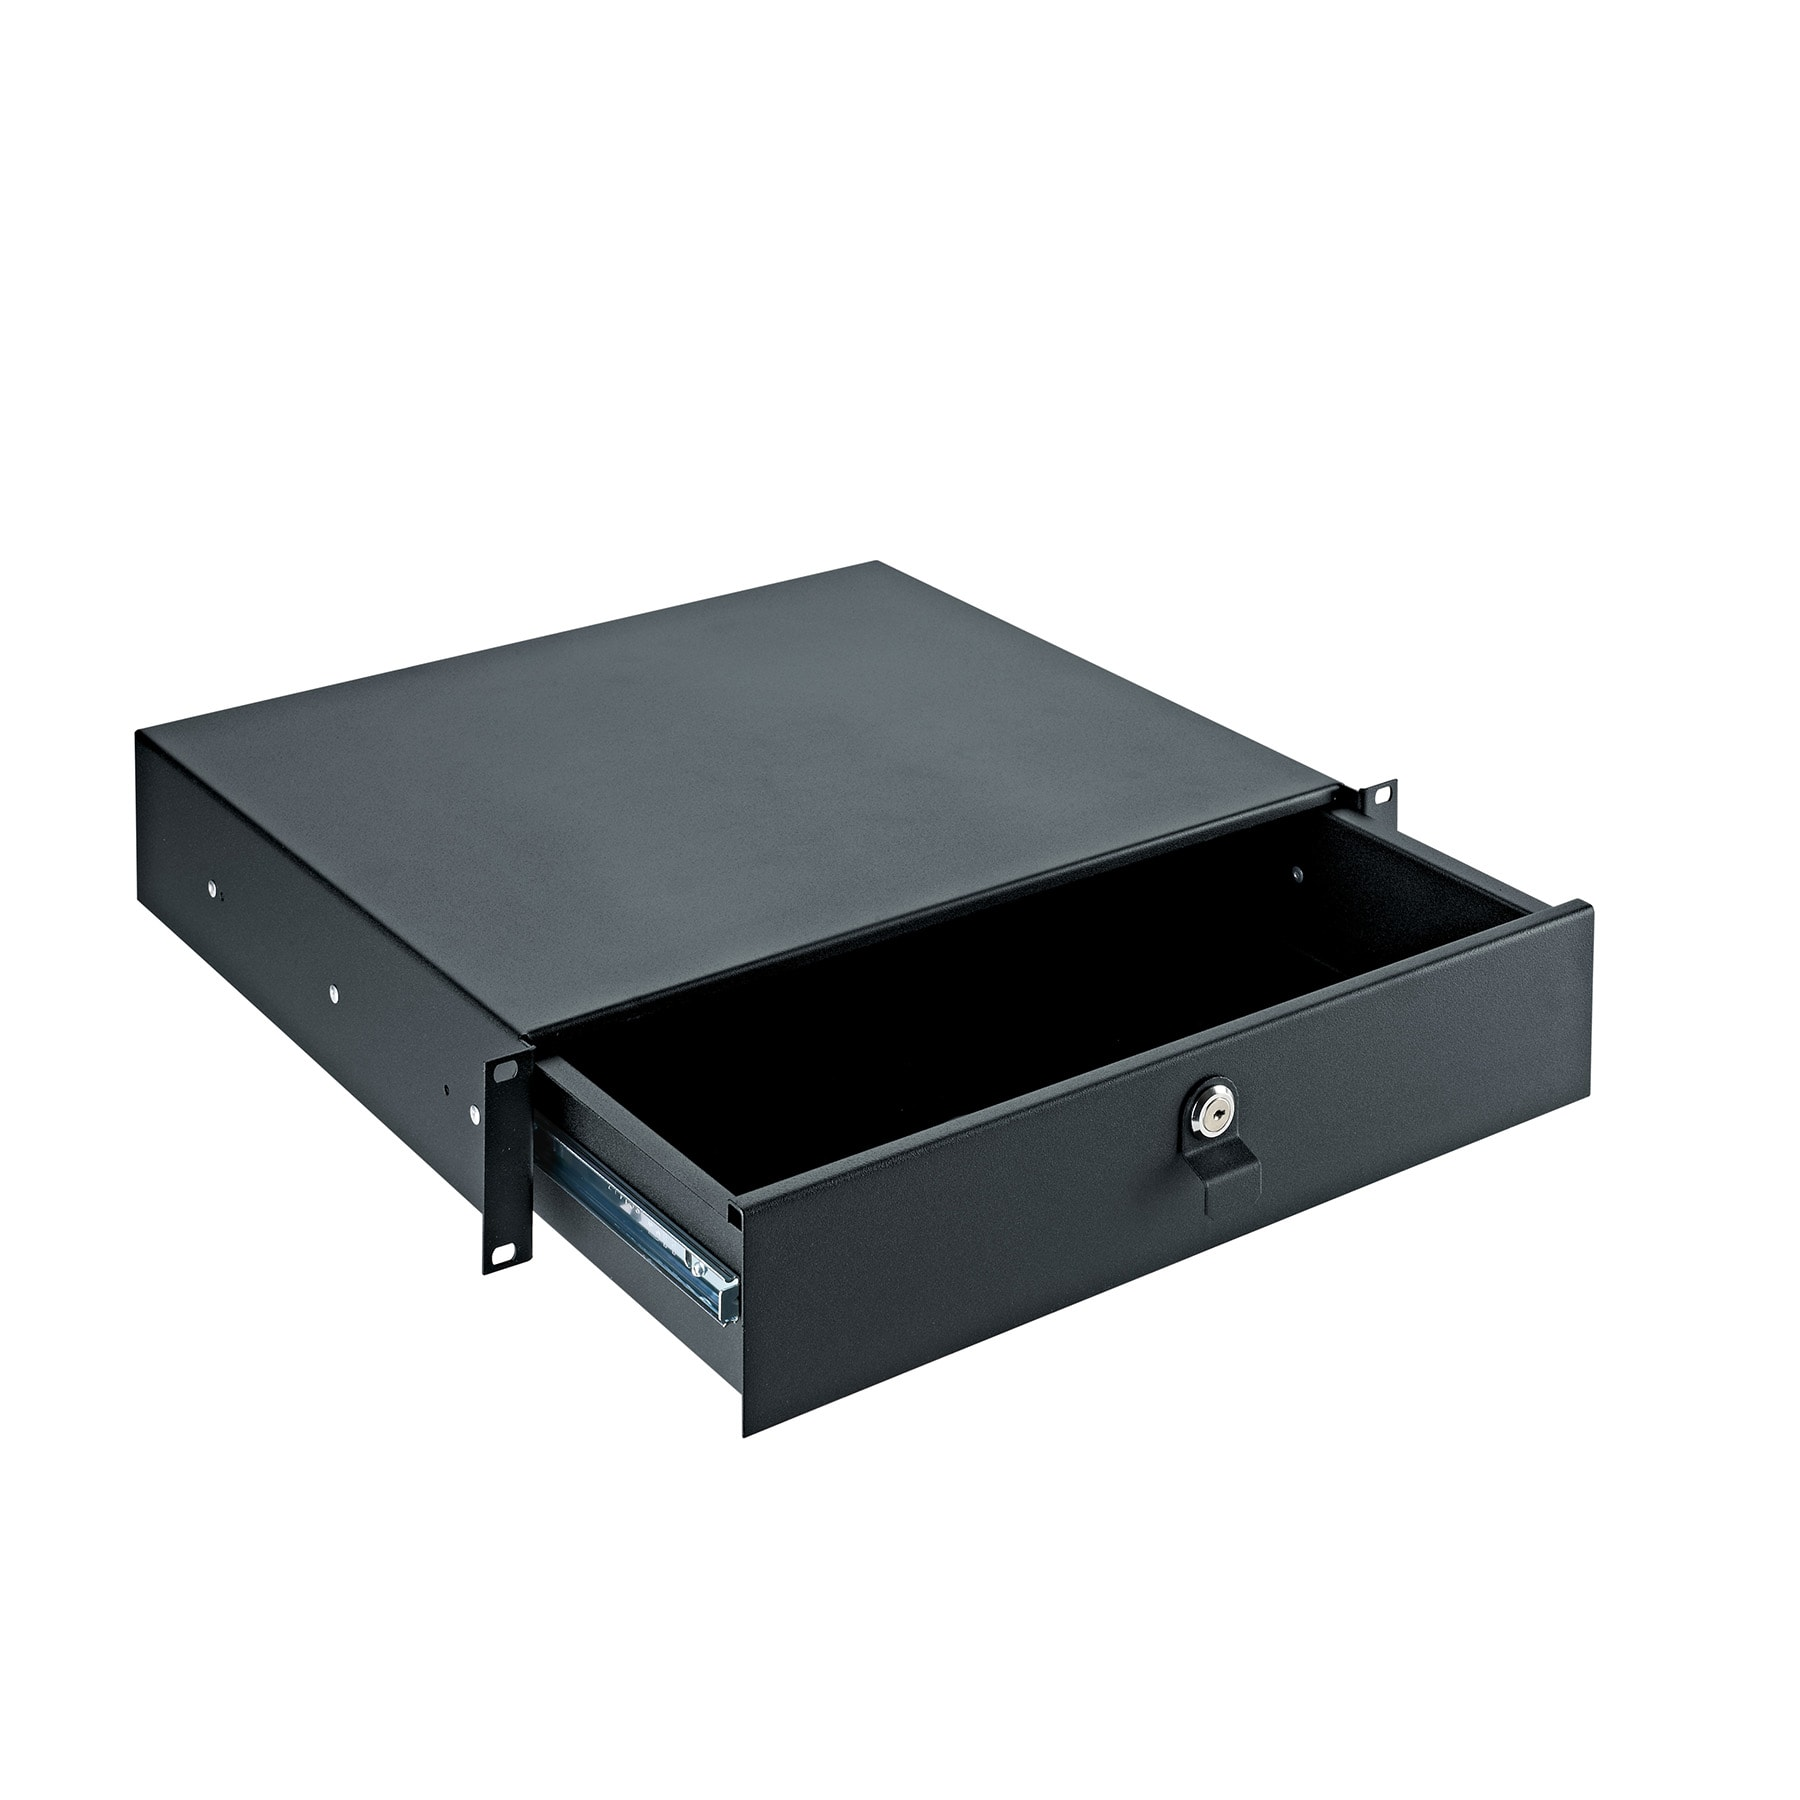 "KM491_2 - 19"" rack drawers - with key lock"